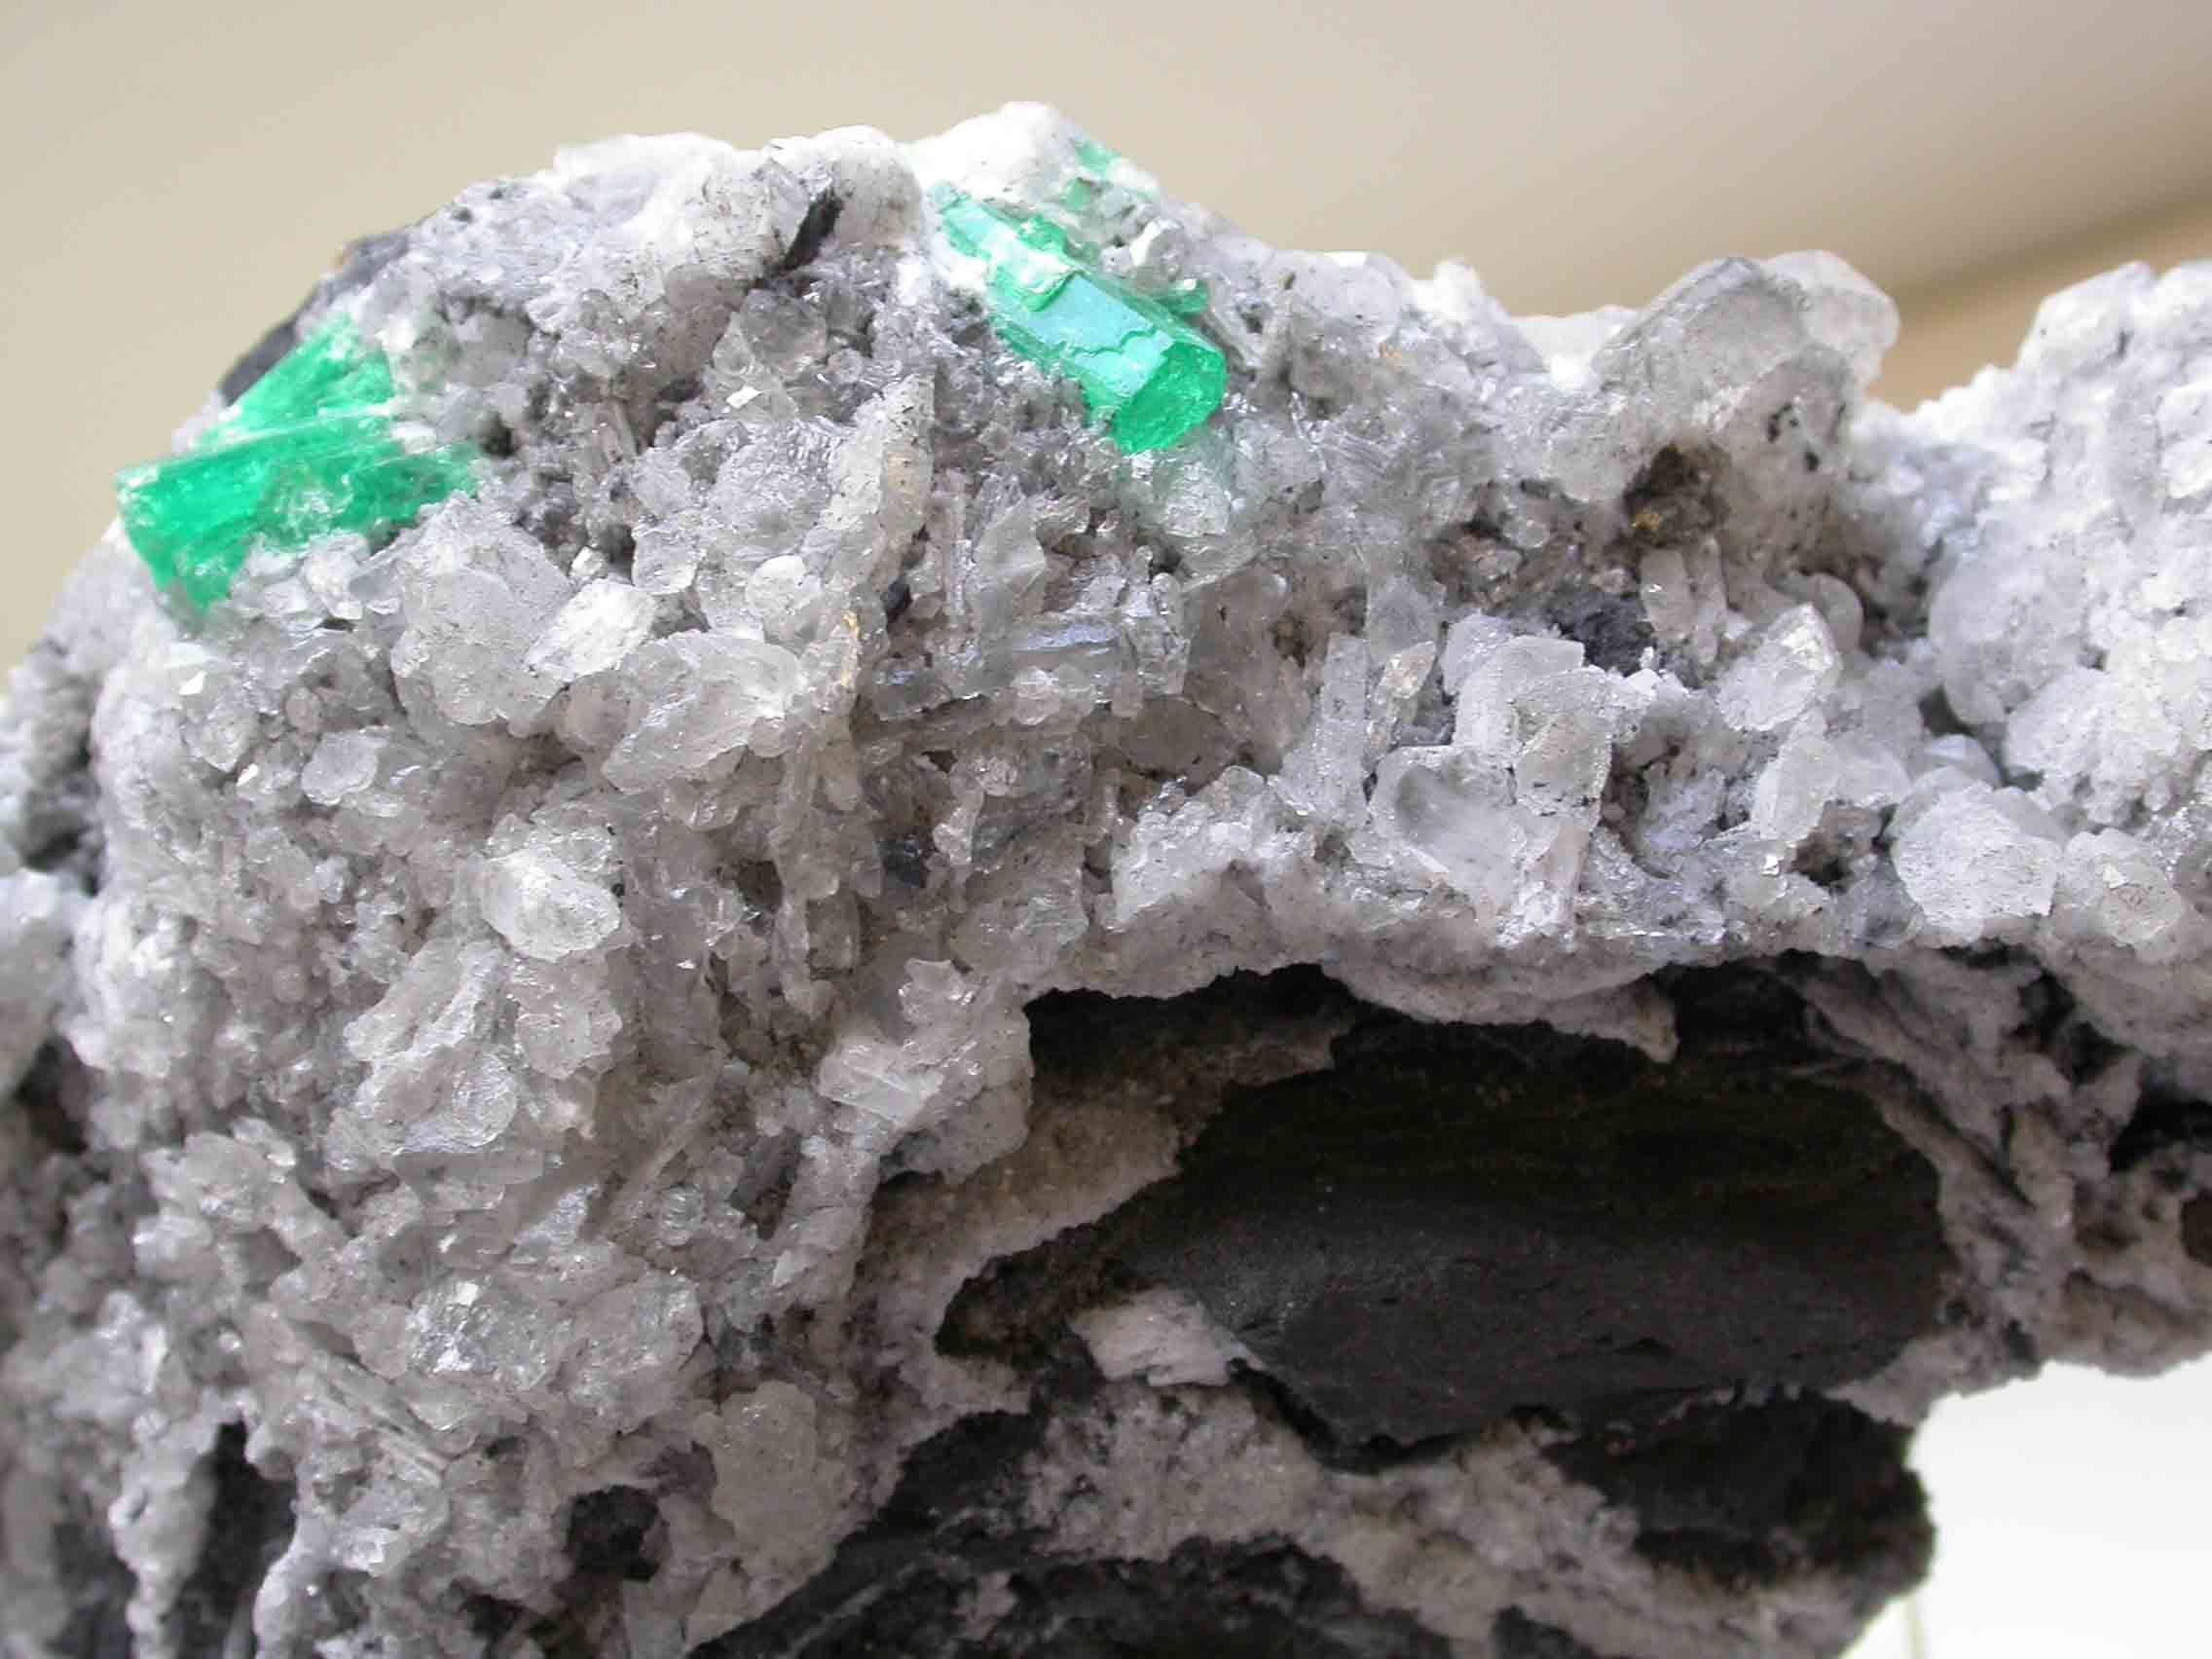 Beryl Emerald Crystal in Calcite Matrix and Carbonaceous 9767 GemA PD